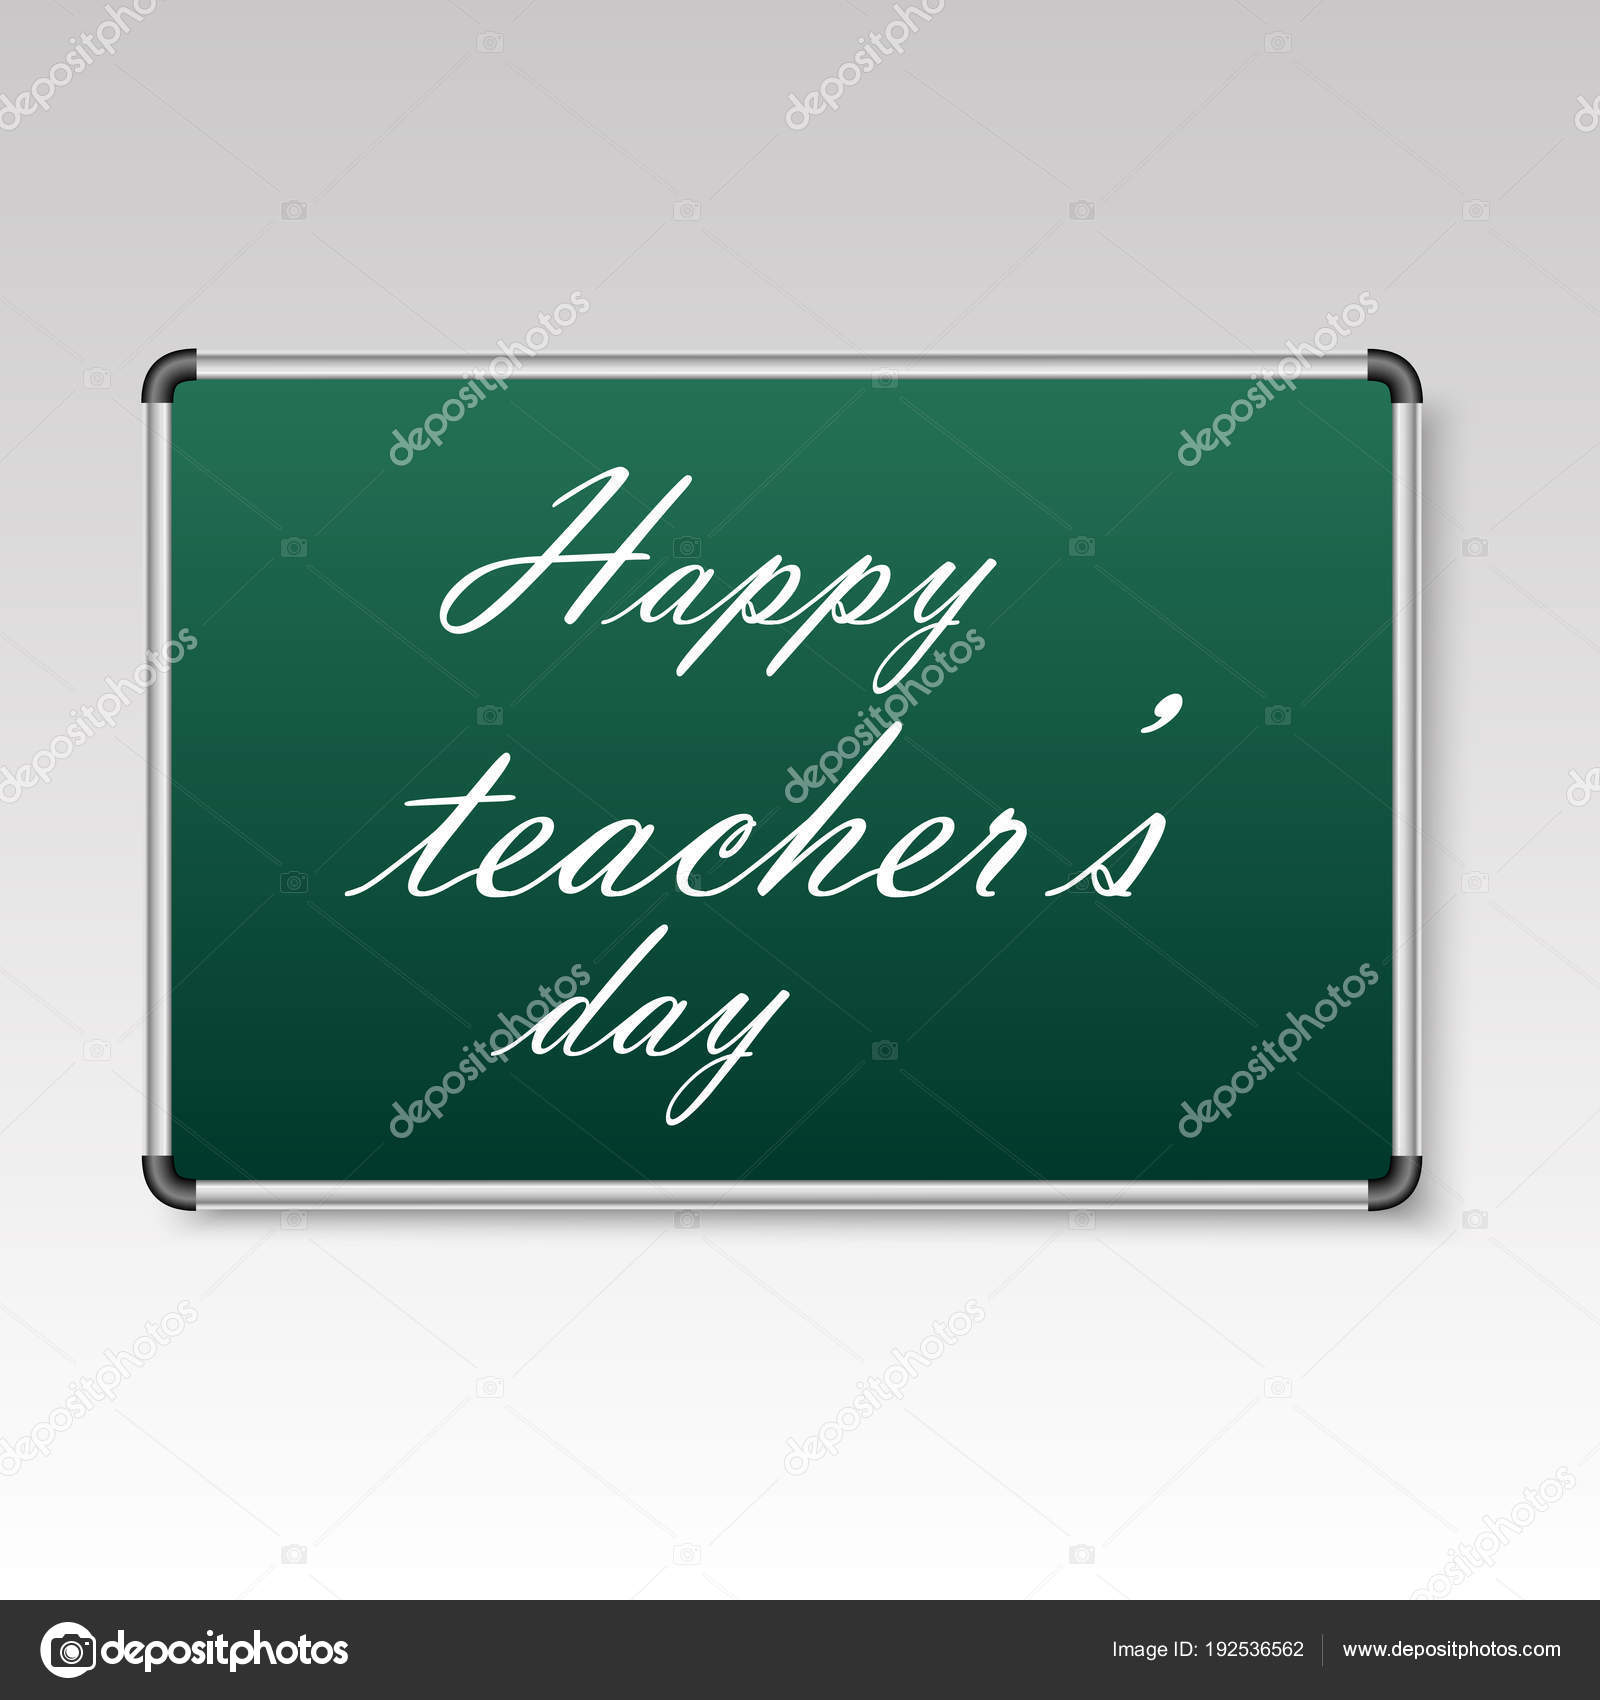 Happy Teachers Day Greeting Card With Hand Written Text Vector